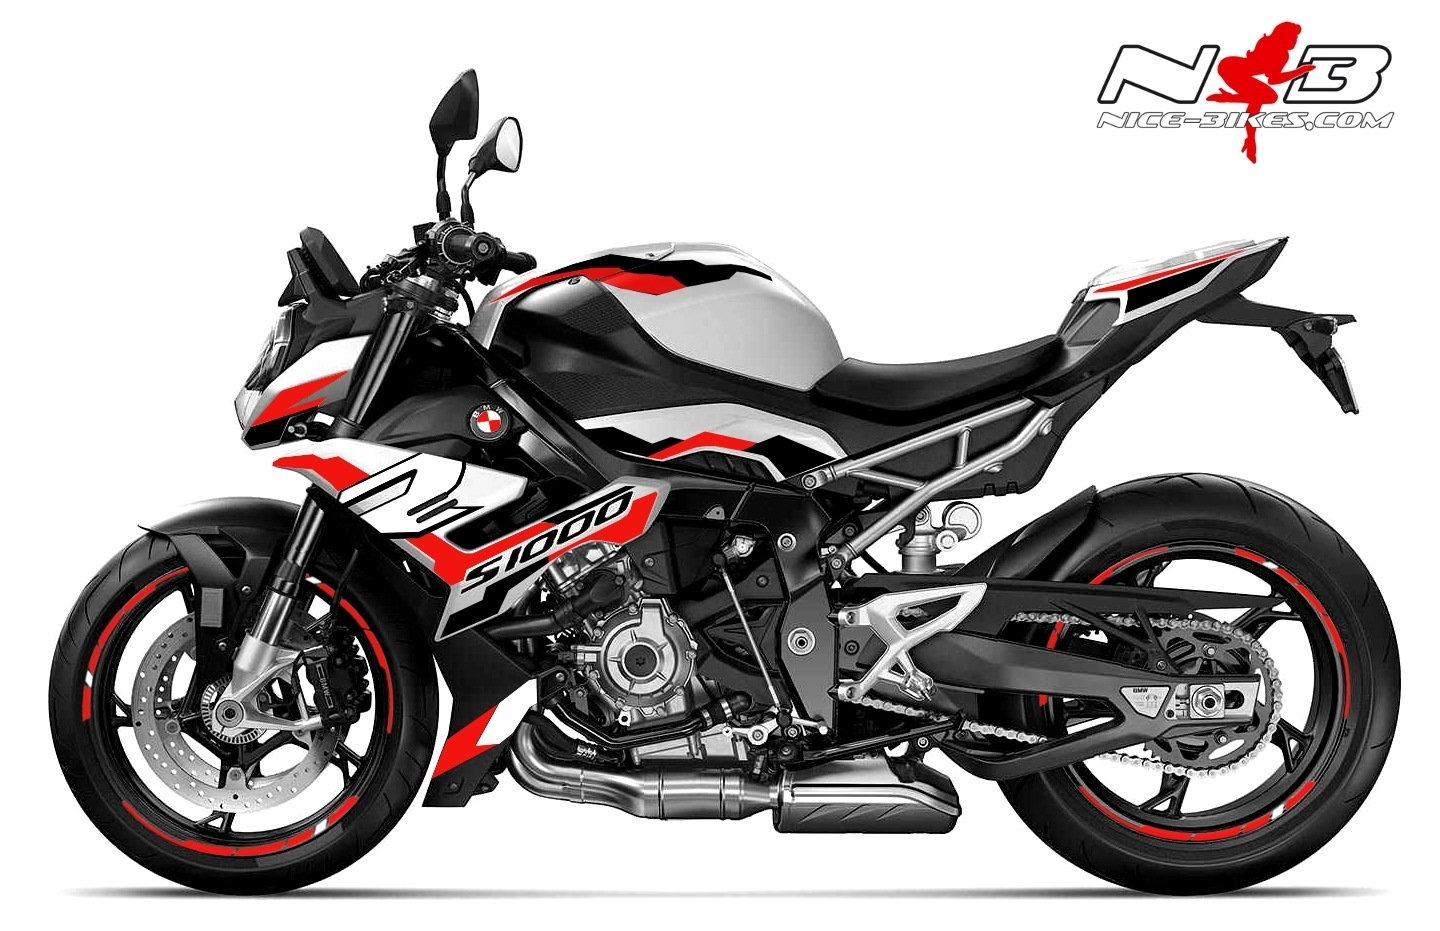 Foliendesign BMW S1000R (Bj. 2021) Racing Red